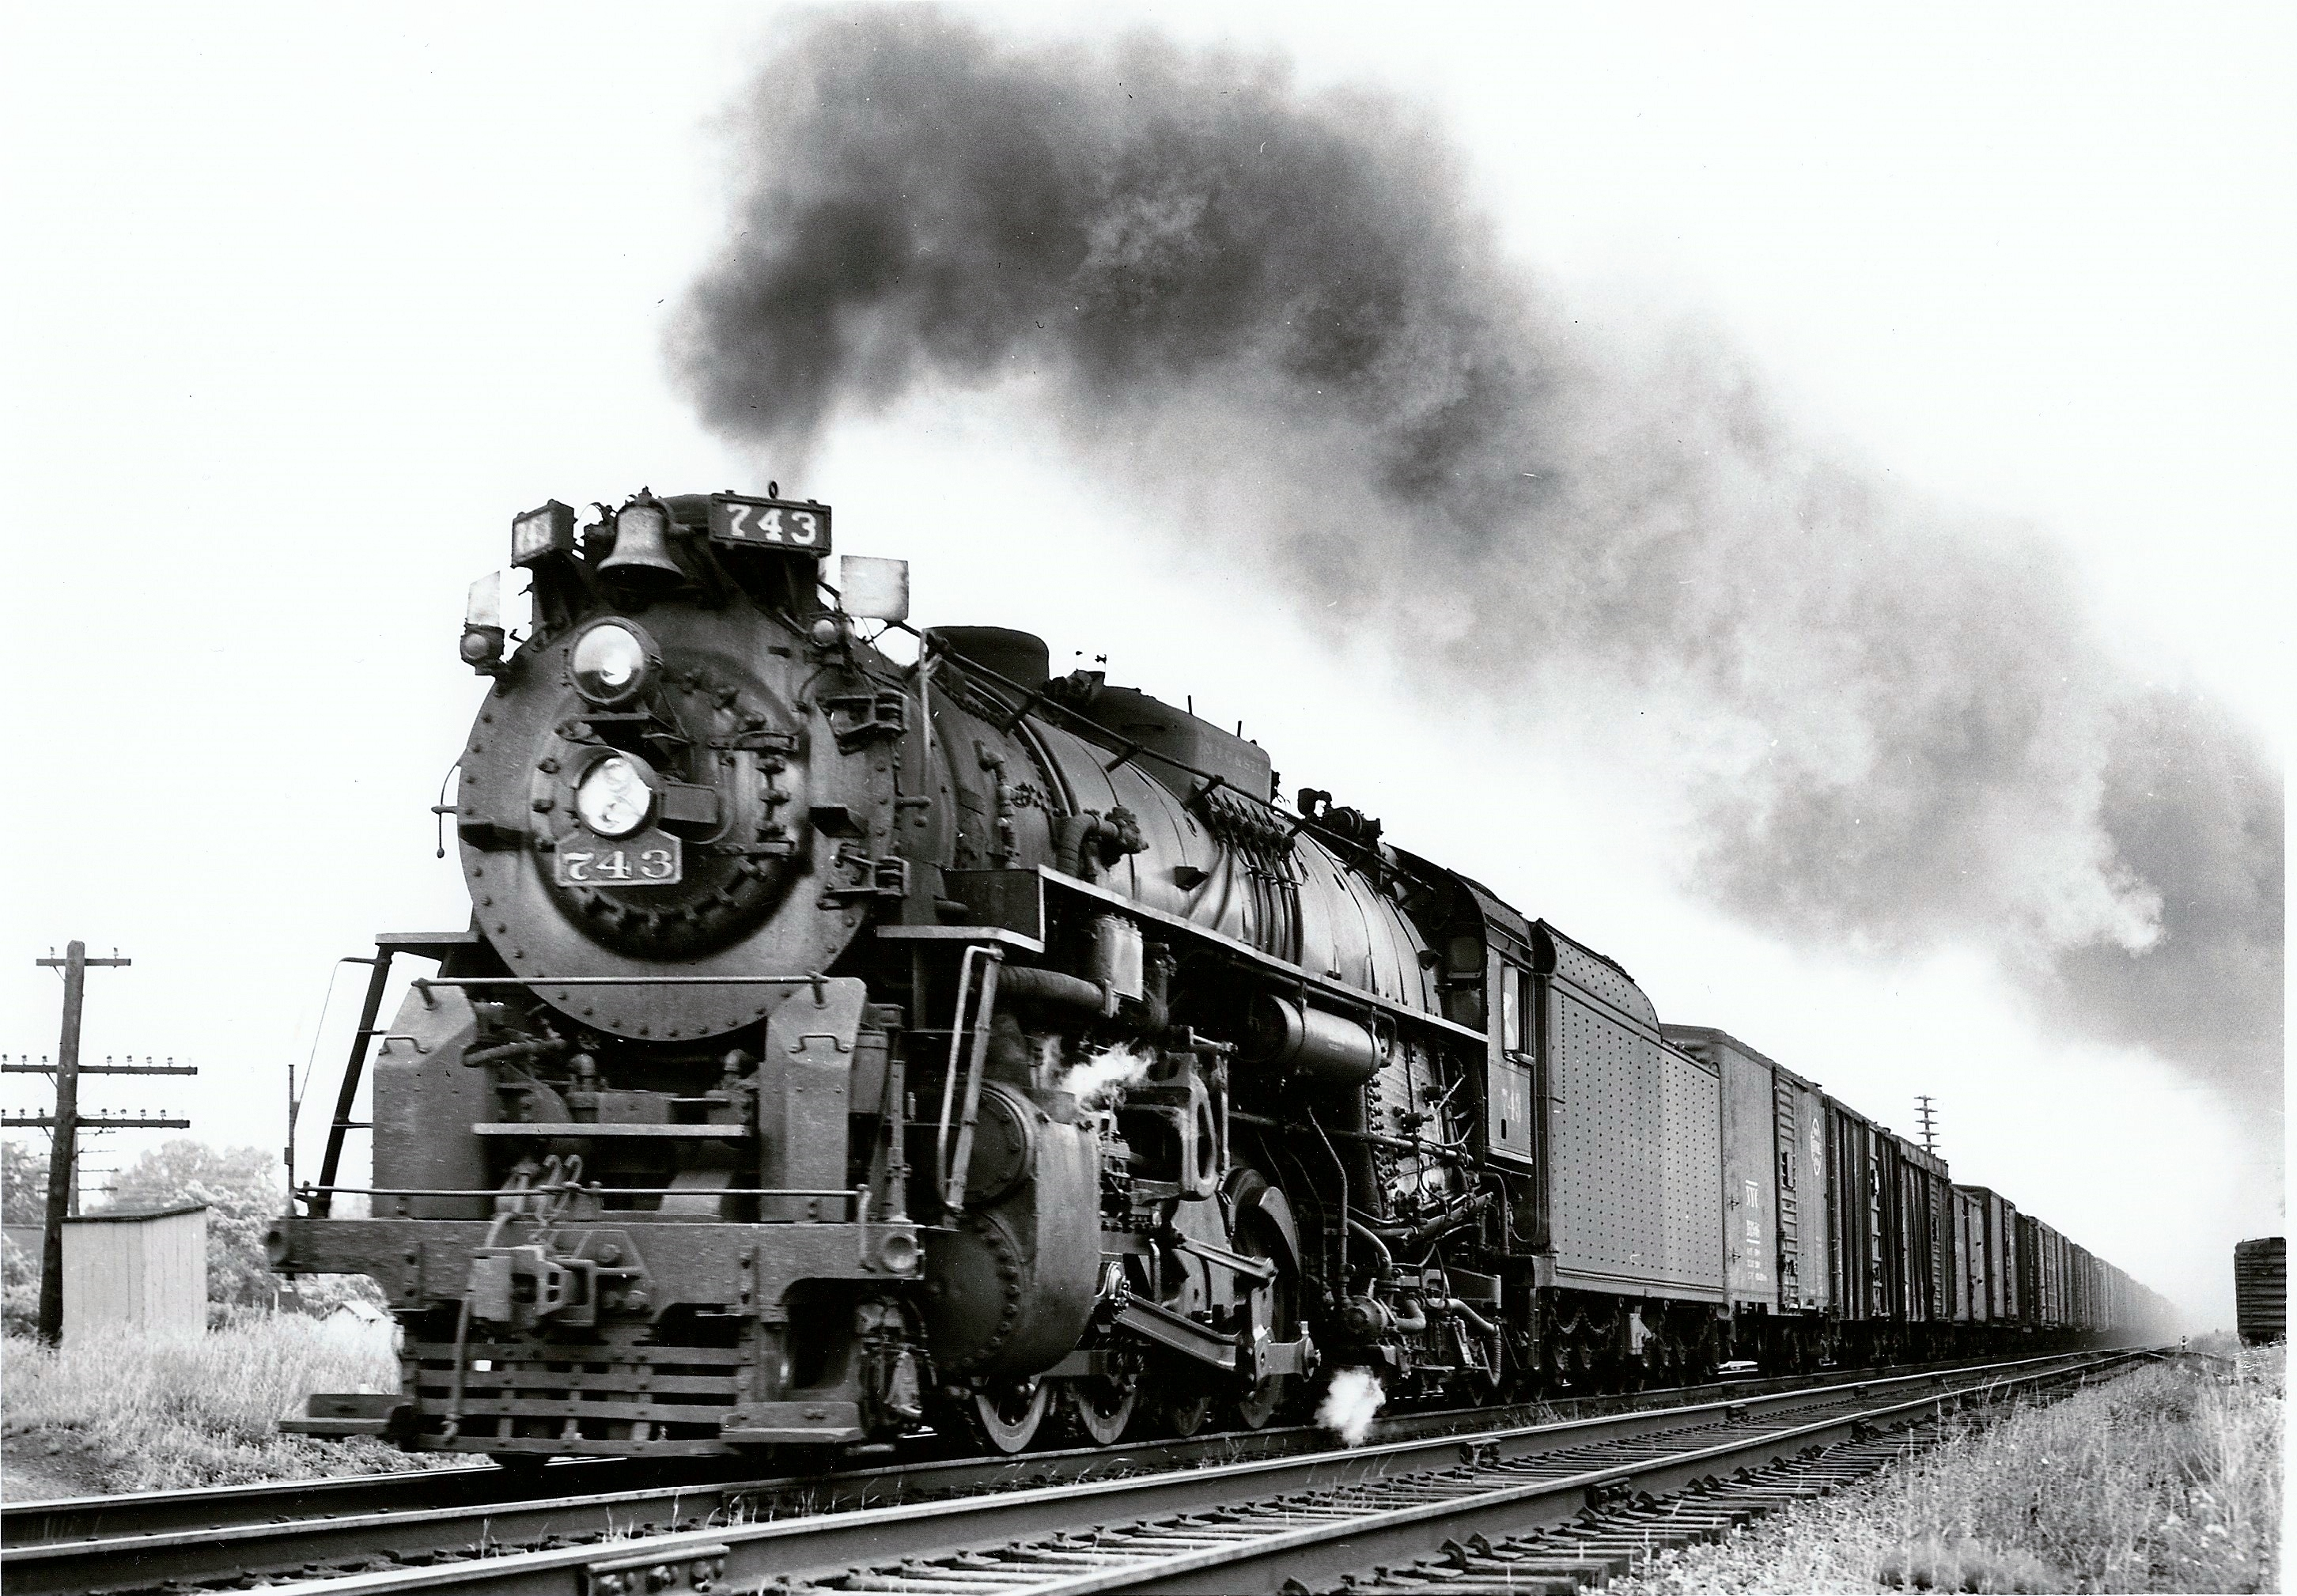 NKP engine No.743 (2-8-2) highballing with train consist